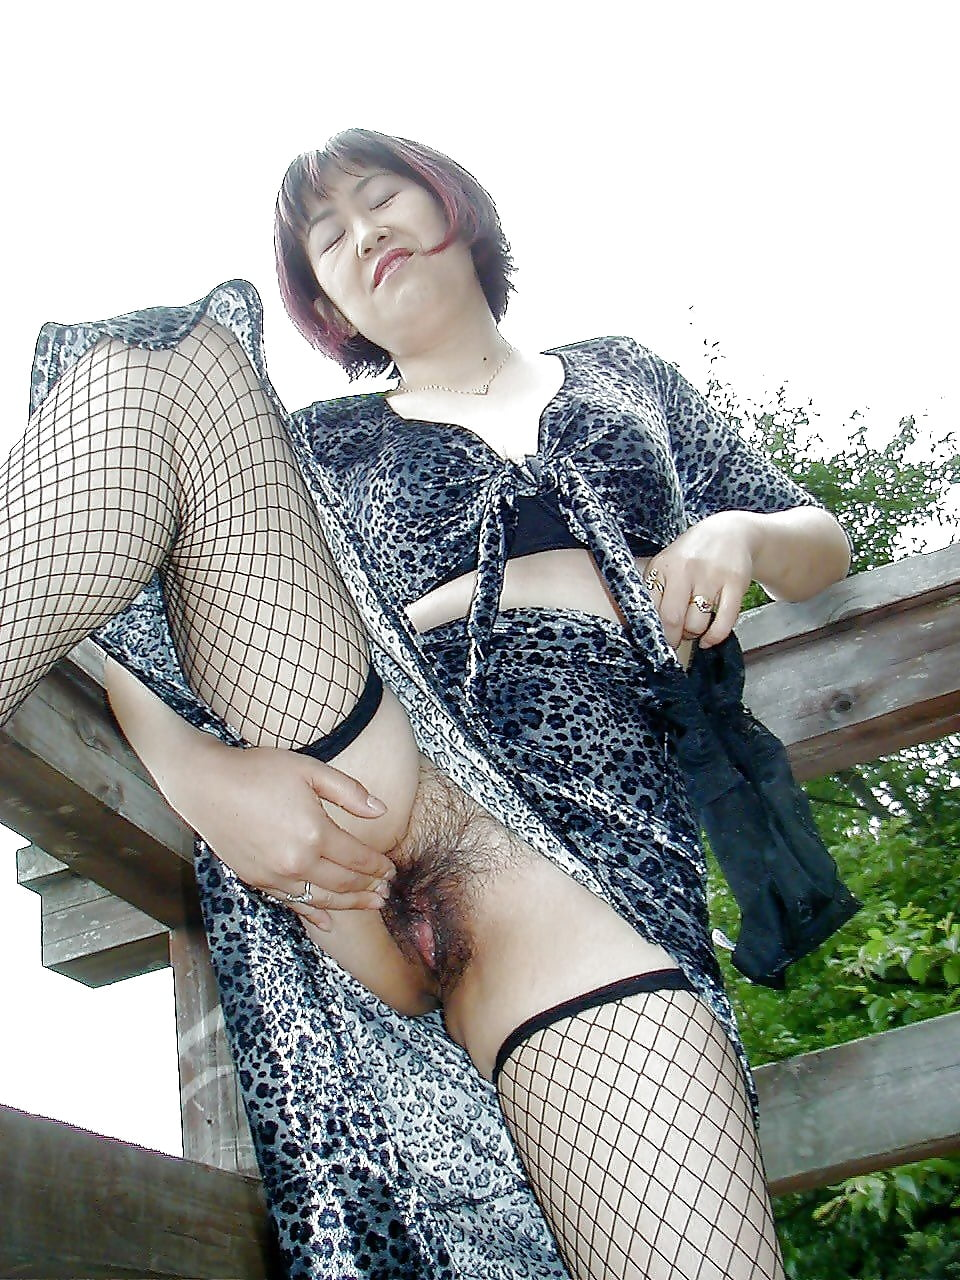 pics-upskirt-mature-asian-scooby-doo-have-sex-with-daphne-free-download